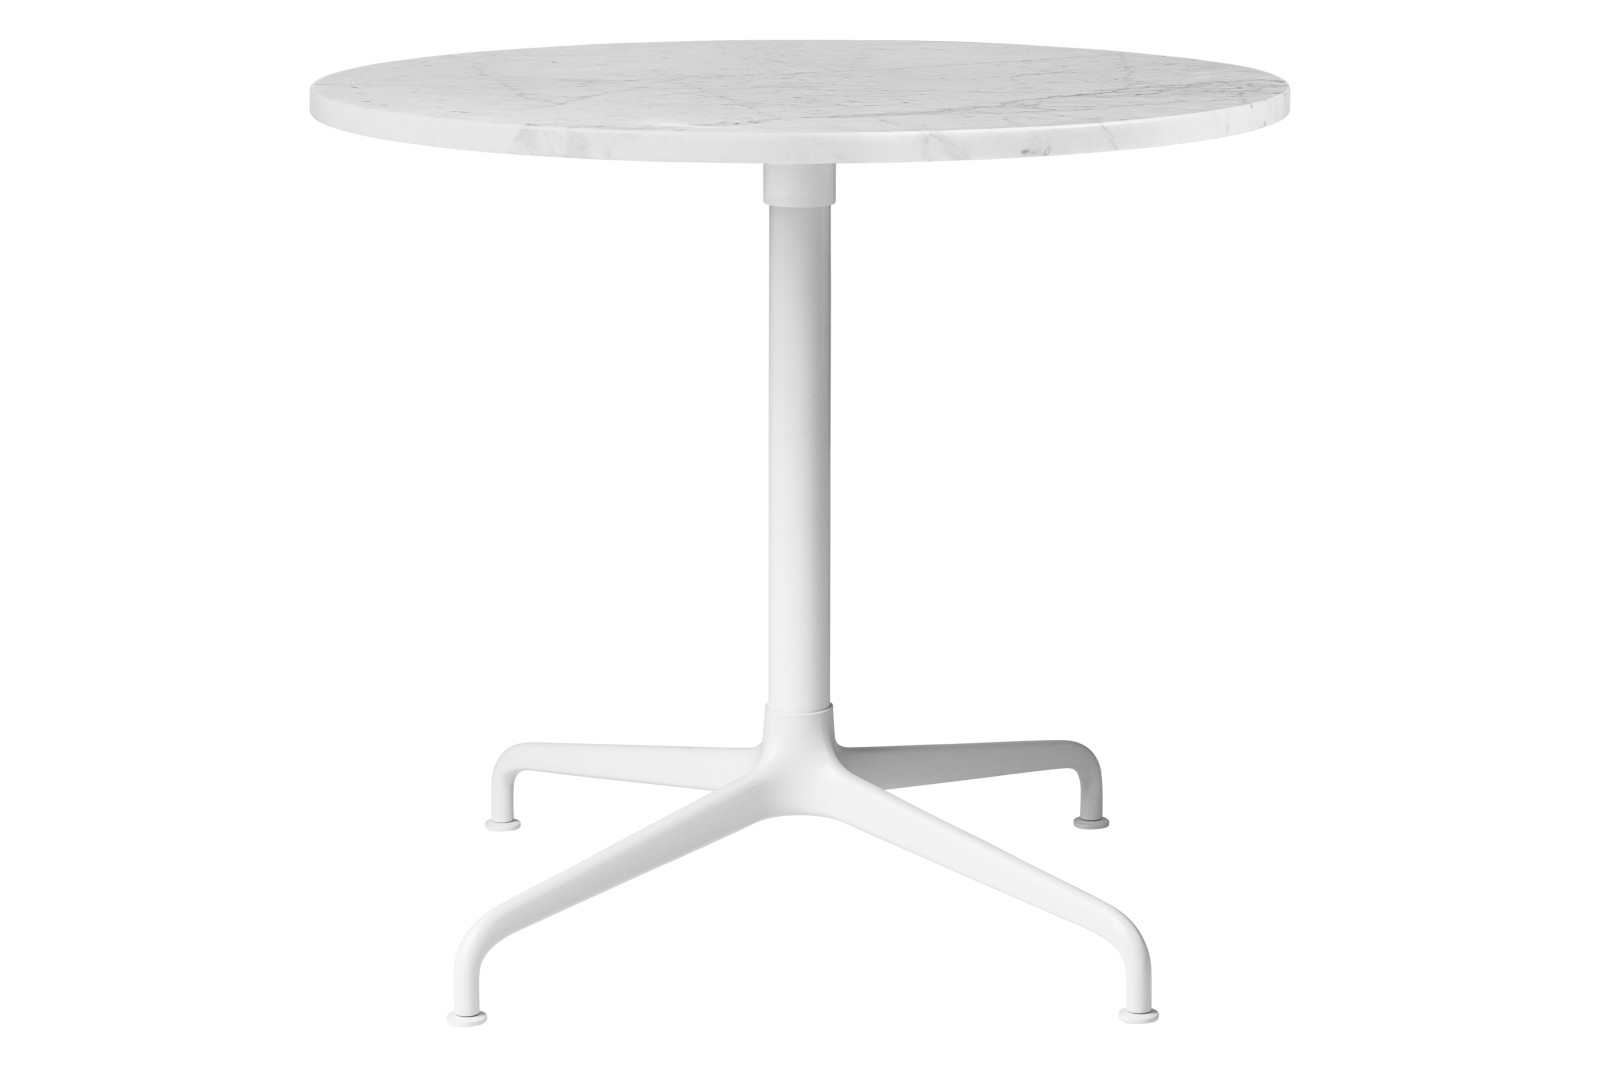 Beetle 4-Star Base Round Lounge Table, Small Soft White Semi Matt Base, White Carrara Marble